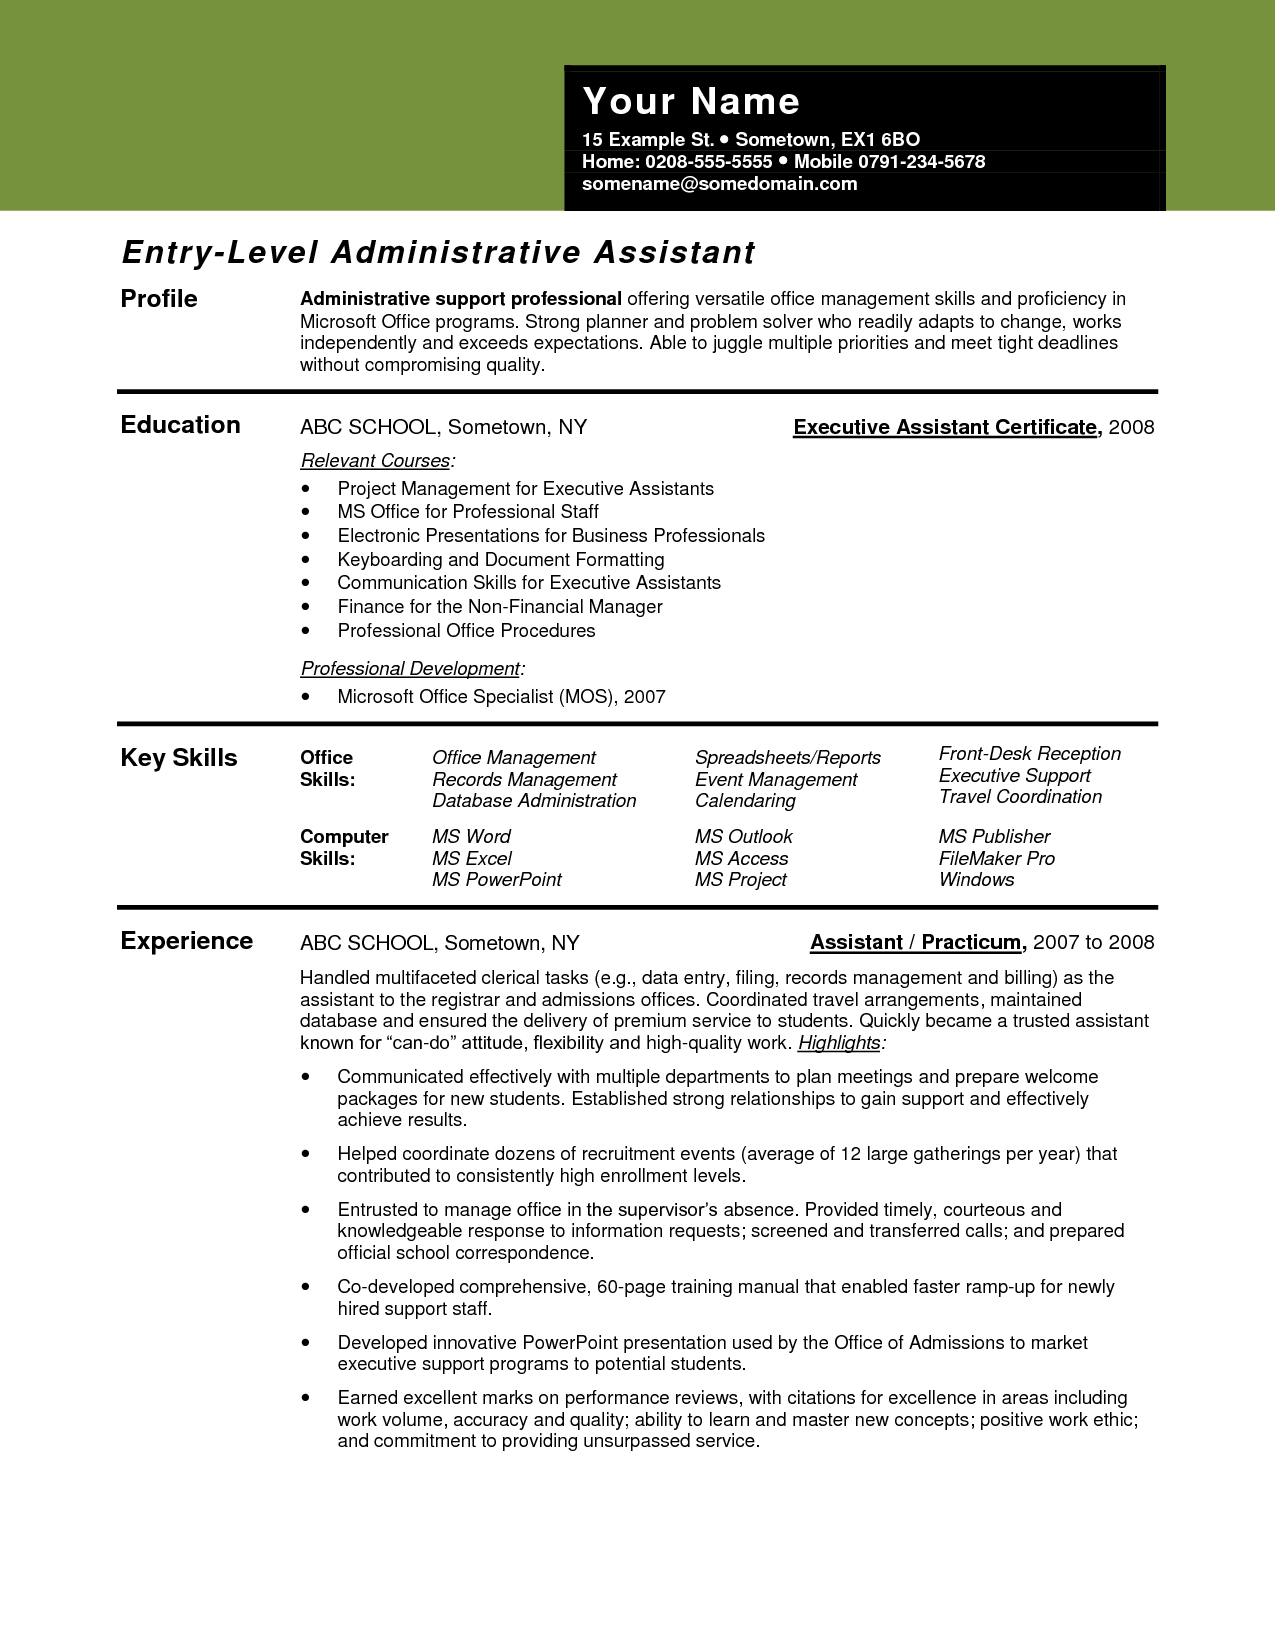 Entry Level Administrative Assistant Resume Examples Resume Examples Teaching Resume Administrative Assistant Resume